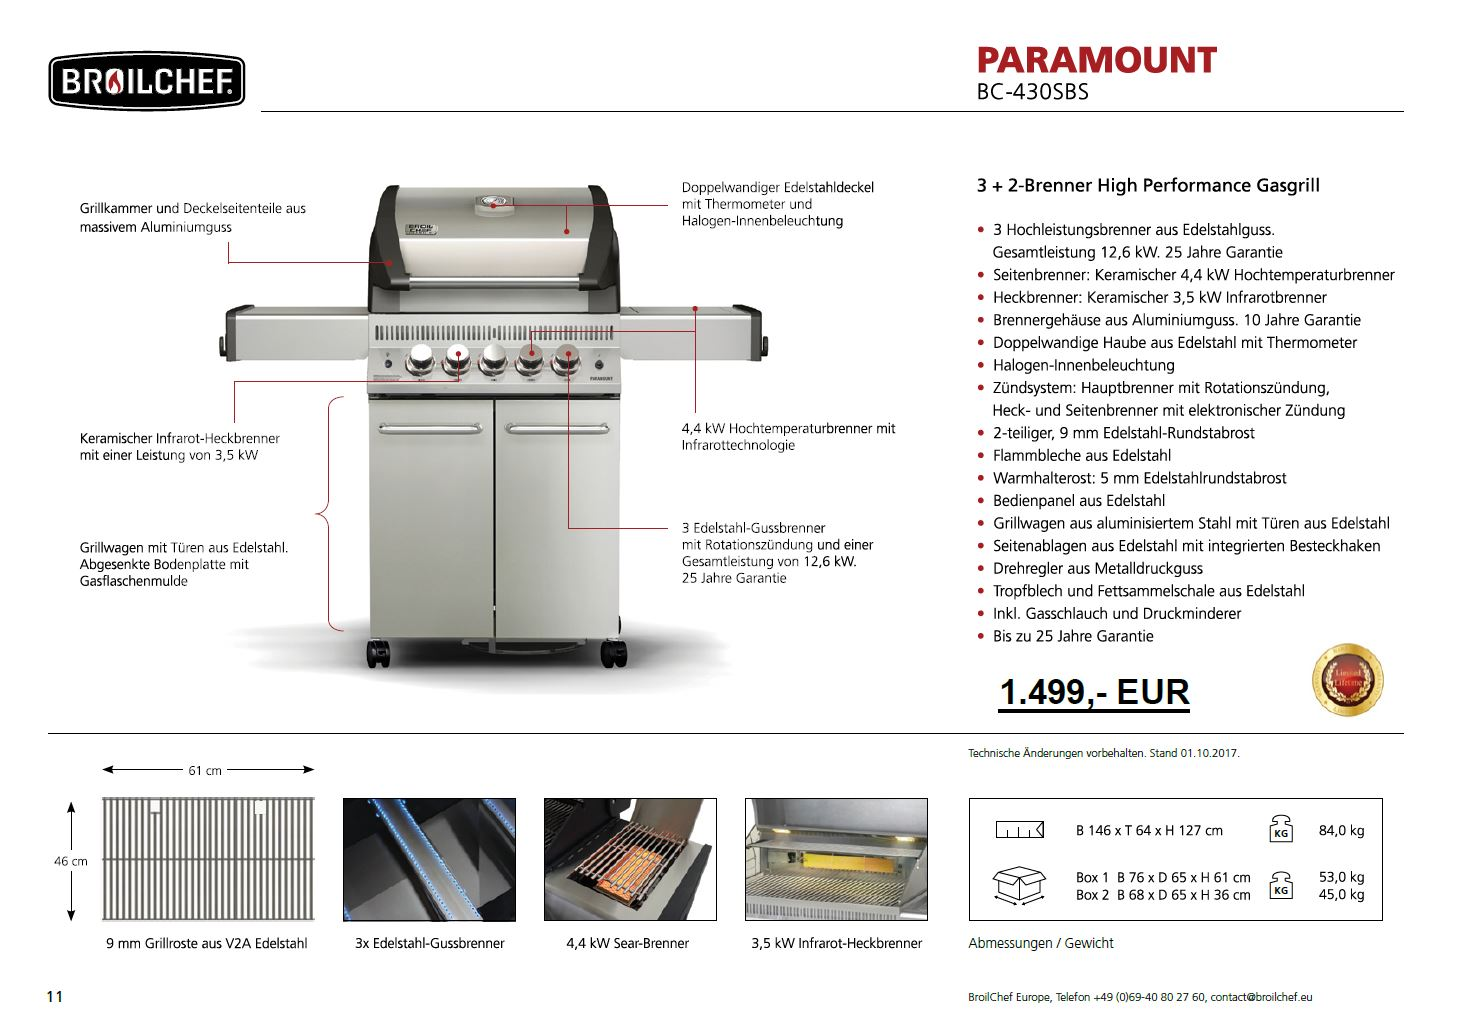 Broilchef Paramount Bc 430sbs Paramount High Performance Gasgrill